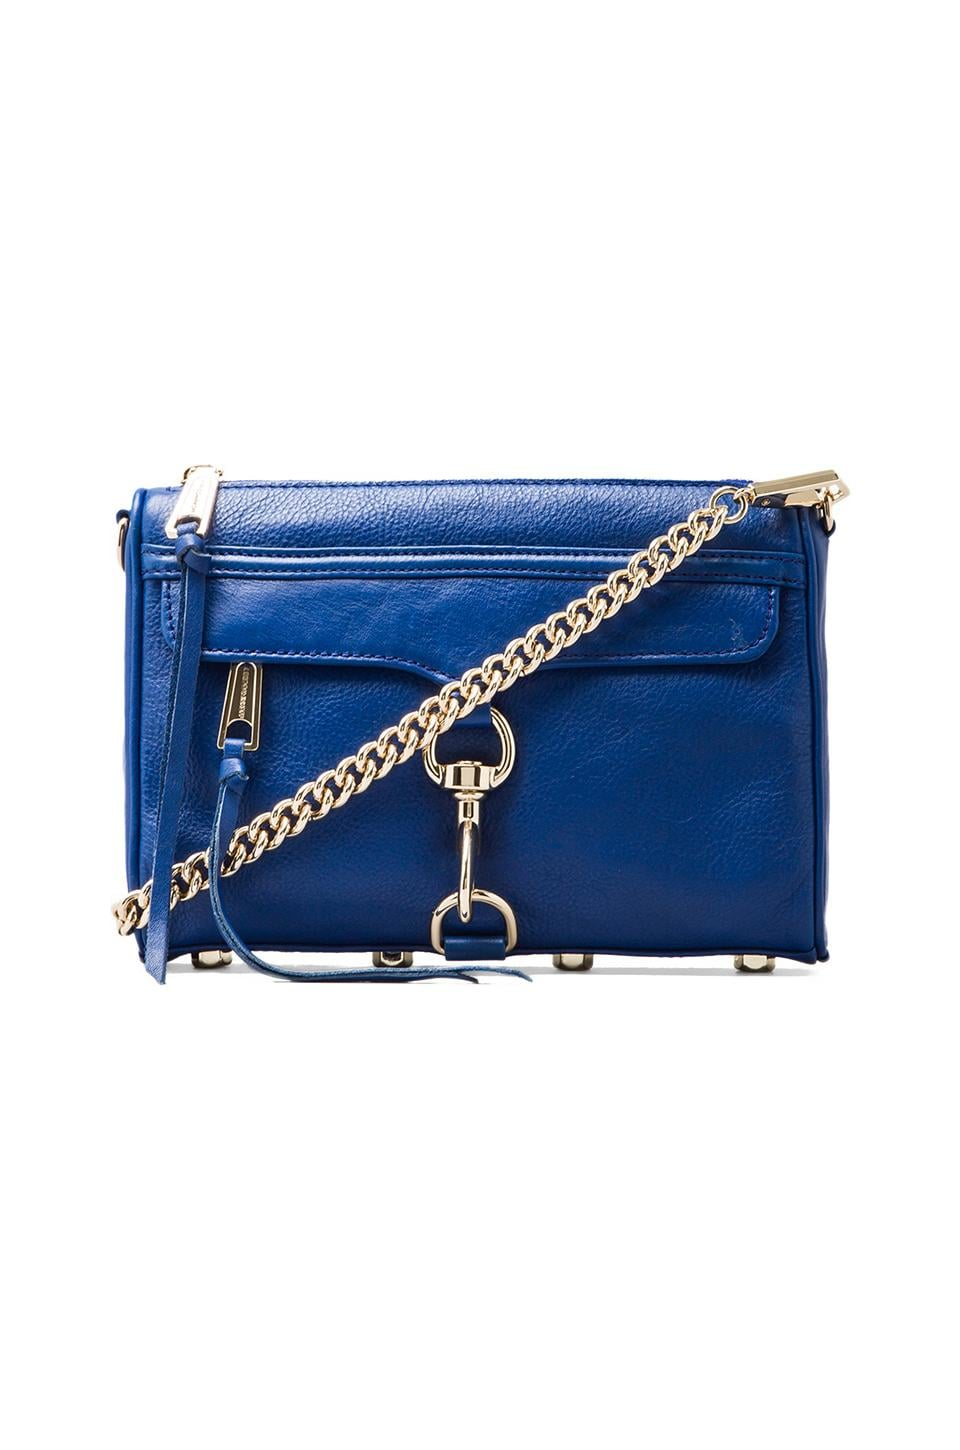 Rebecca Minkoff Mini Mac in Electric Blue